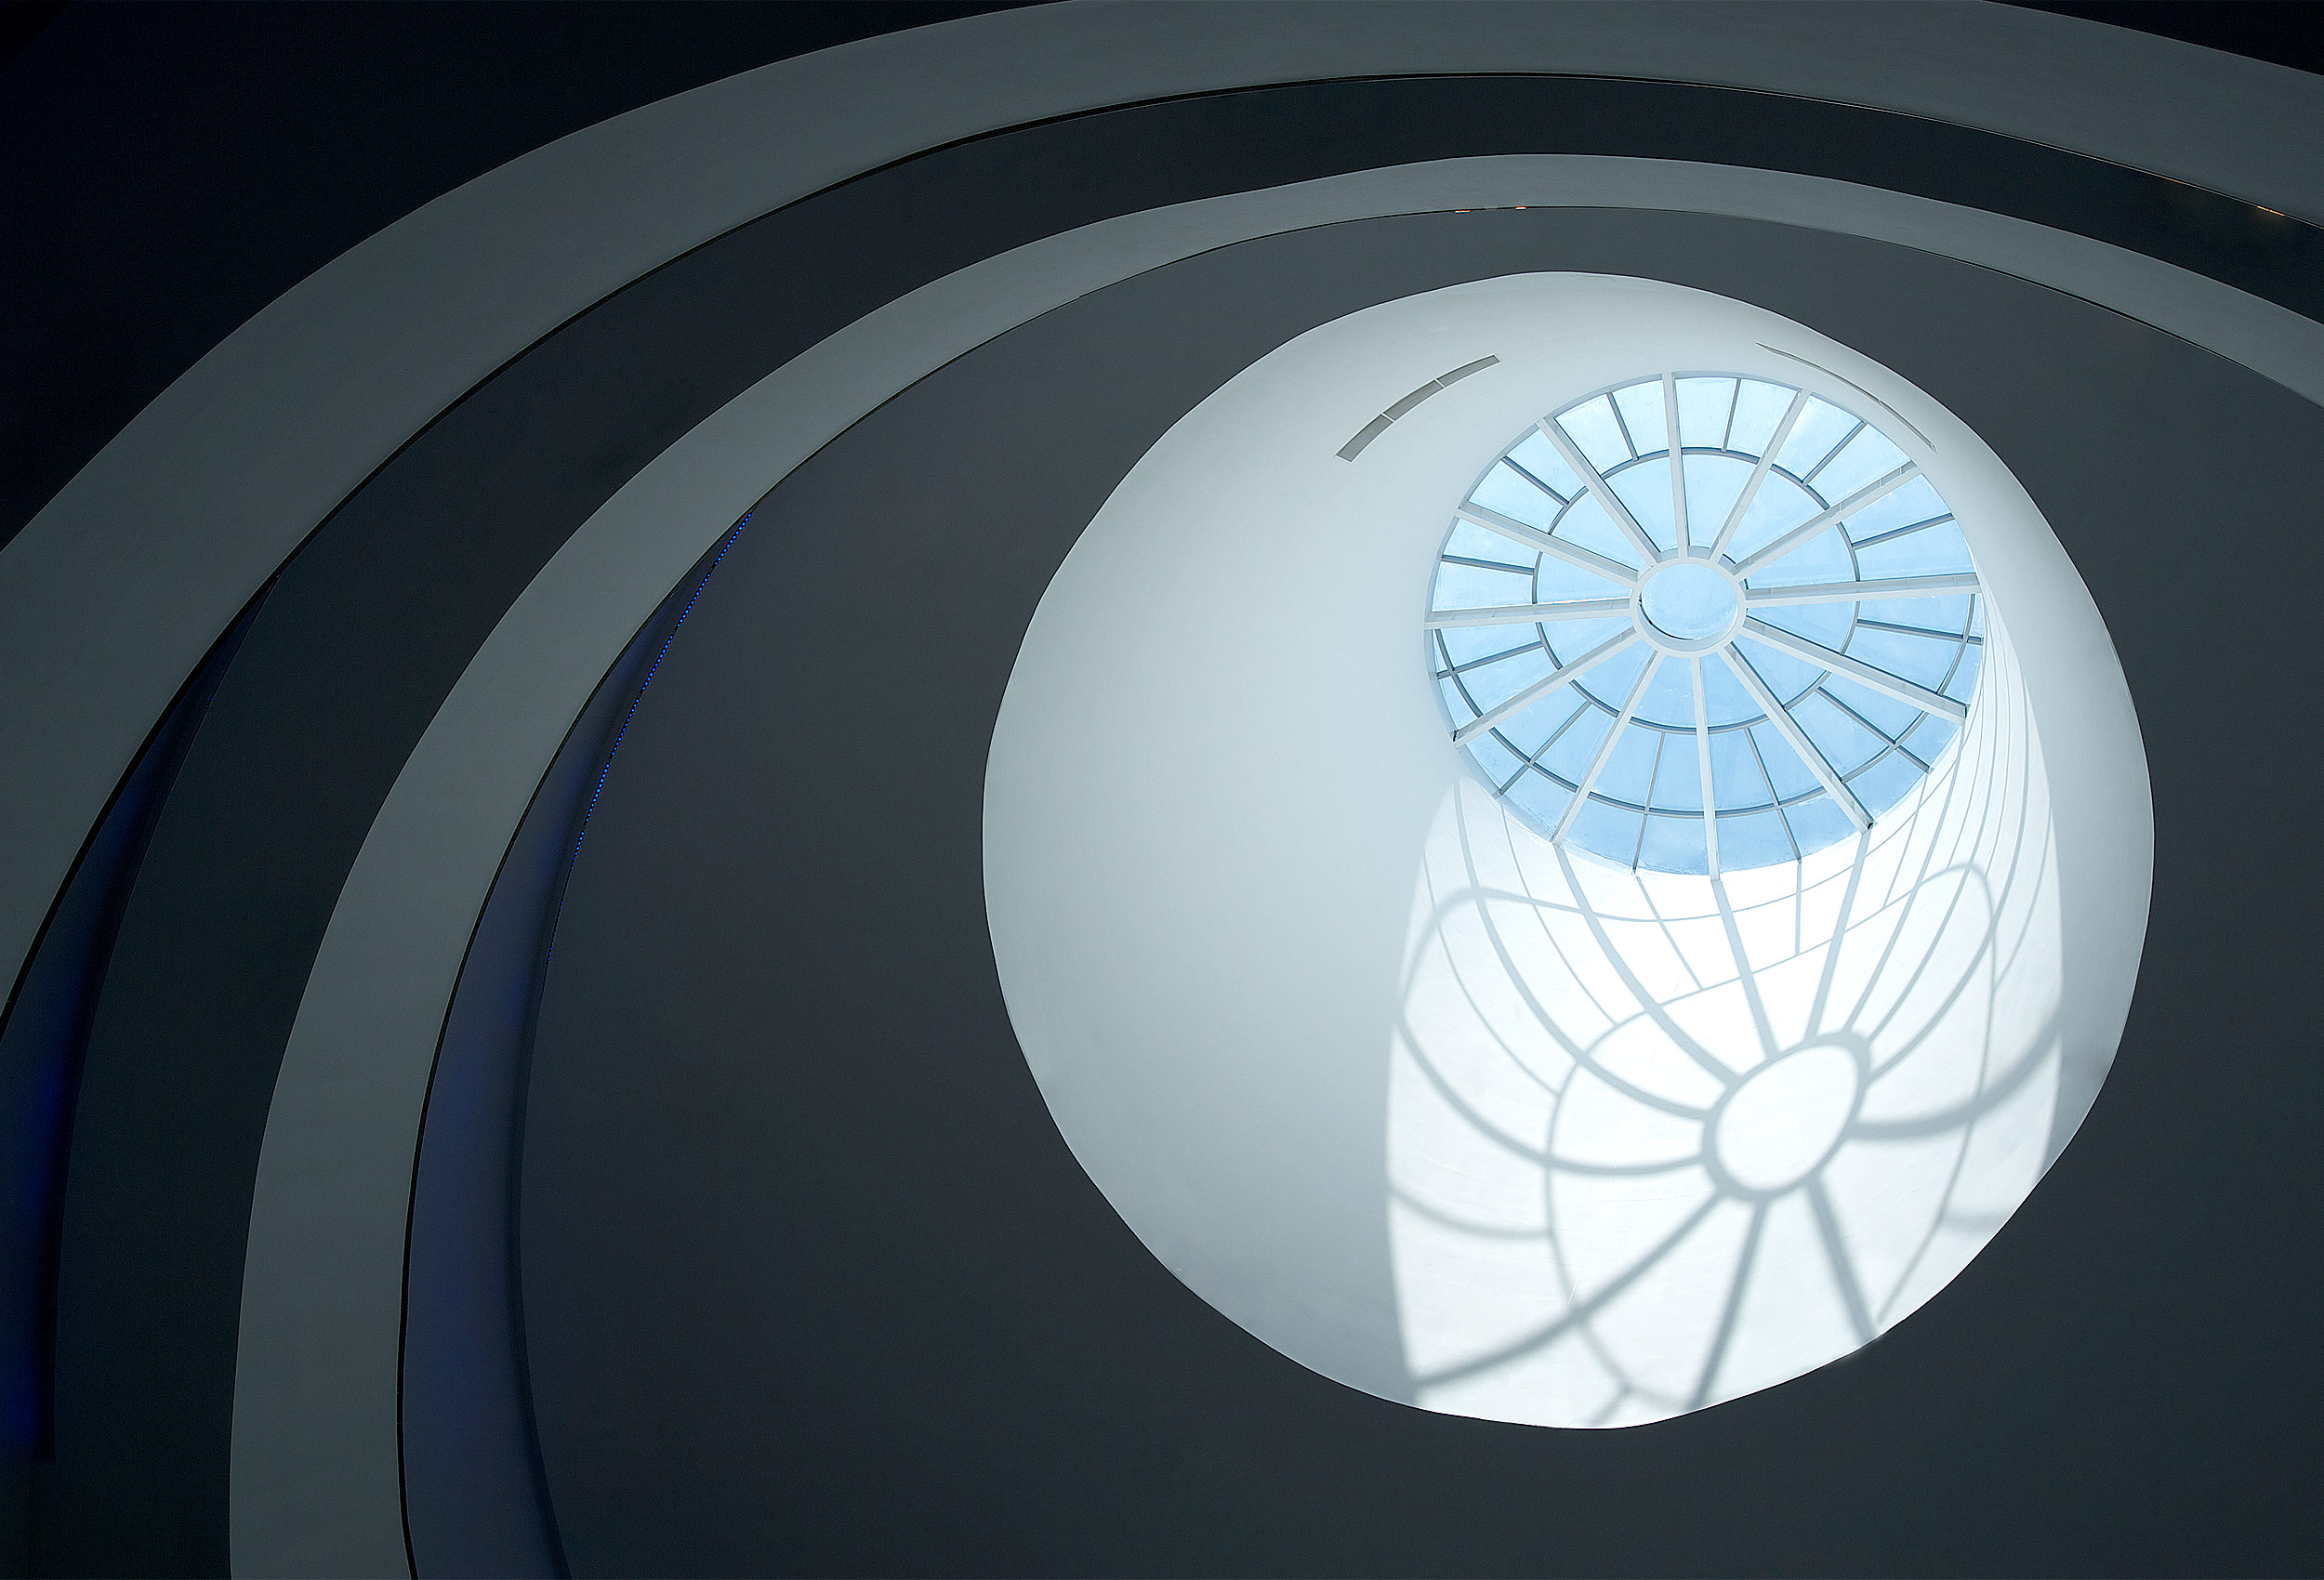 Macau Science Centre skylight by architectural photographer Kristopher Grunert